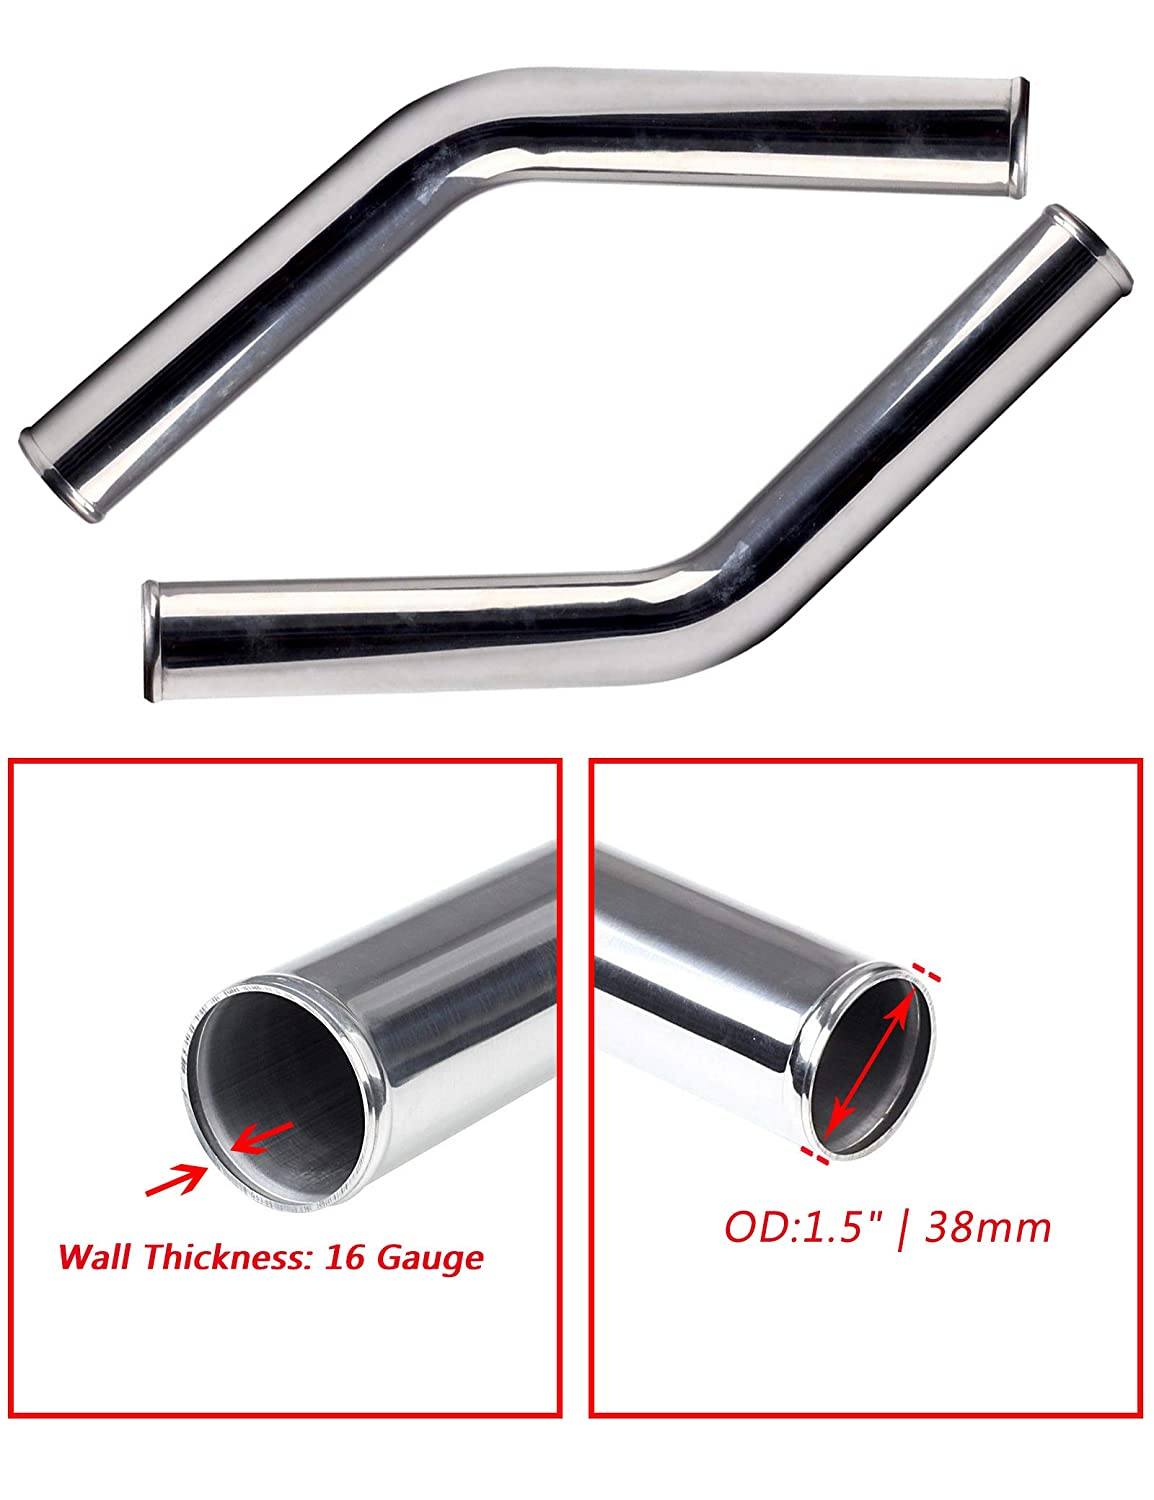 38mm BLACKHORSE-RACING 45 Degree Aluminum Intercooler Piping and Intake Pipe for Universal Use 2pcs Wall Thickness 16 Gauge OD 1 1//2 1.5 Inch Total Length 600mm